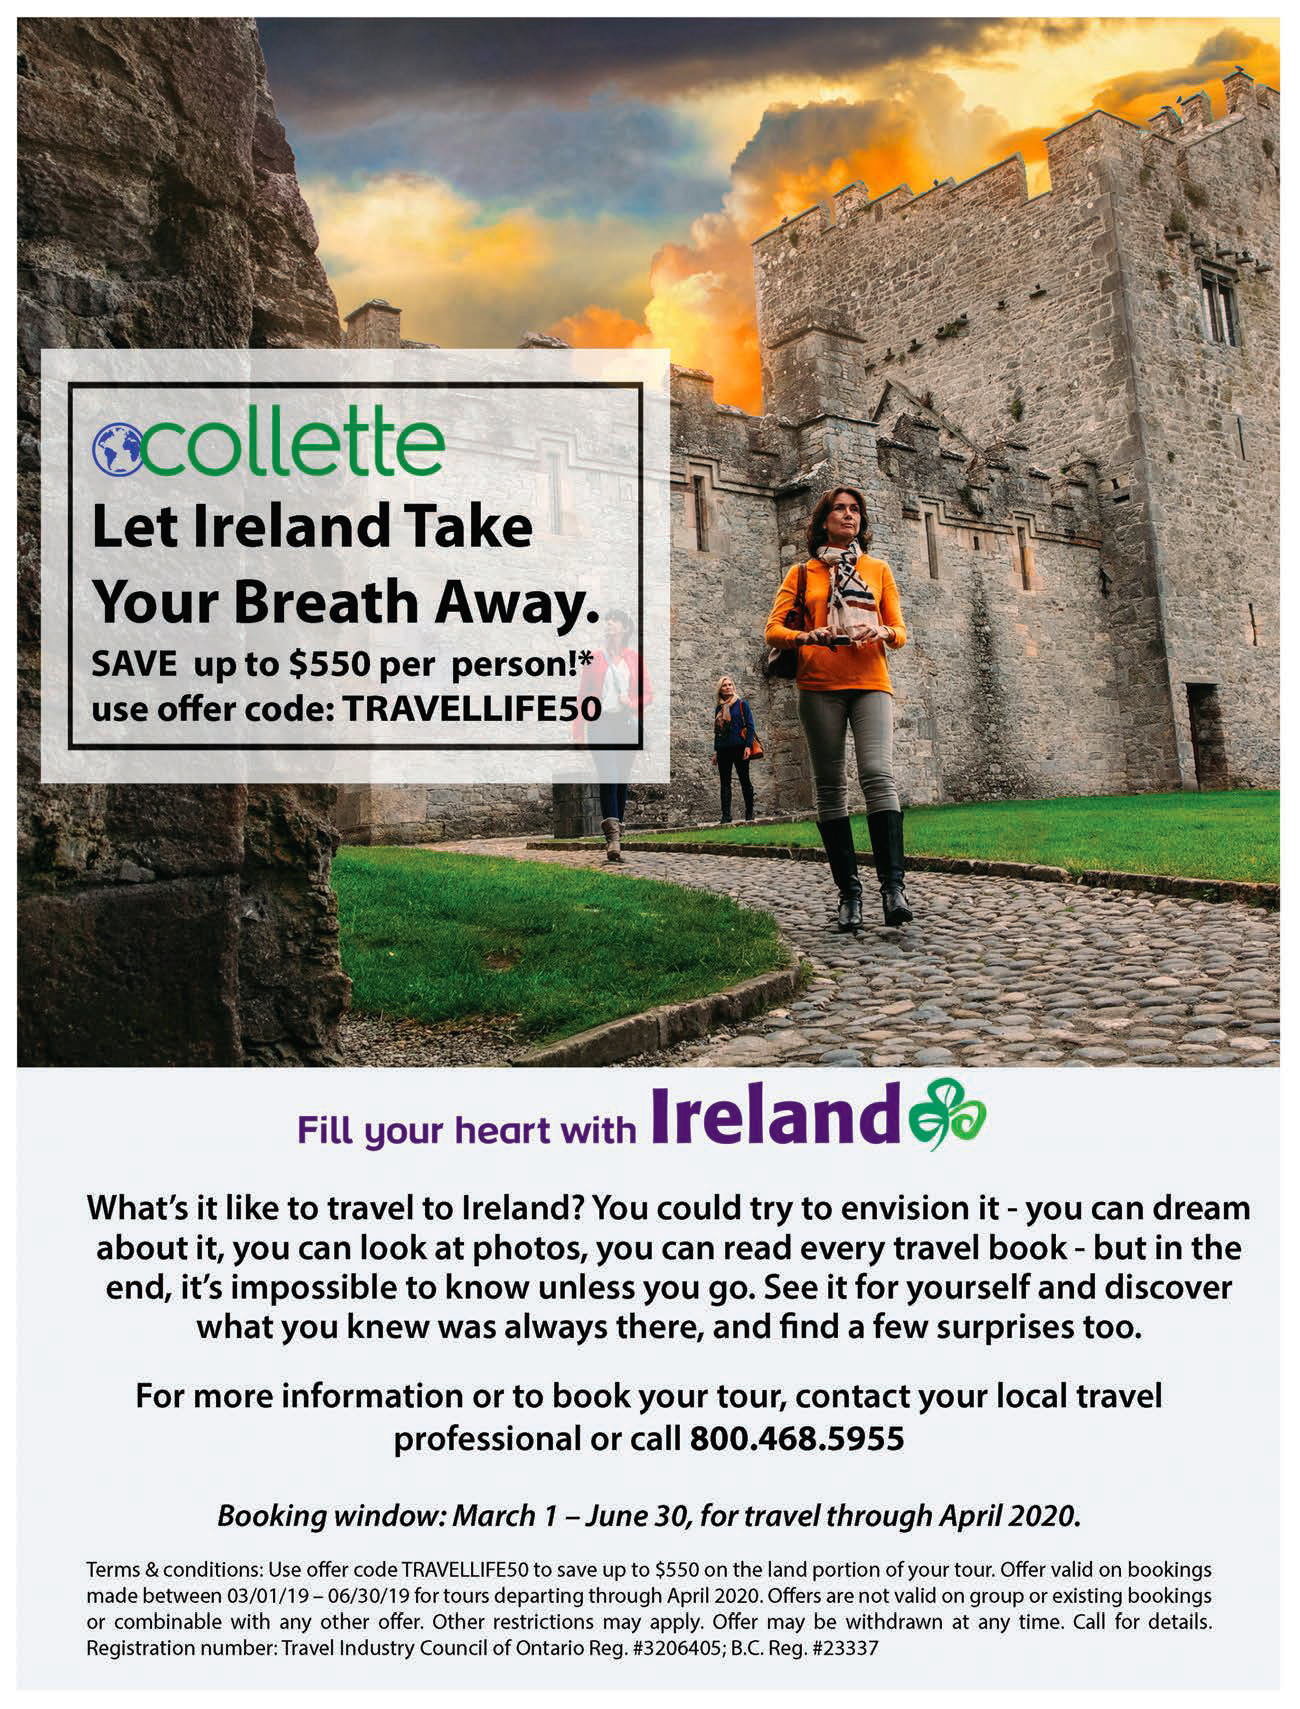 Collete Ireland offer